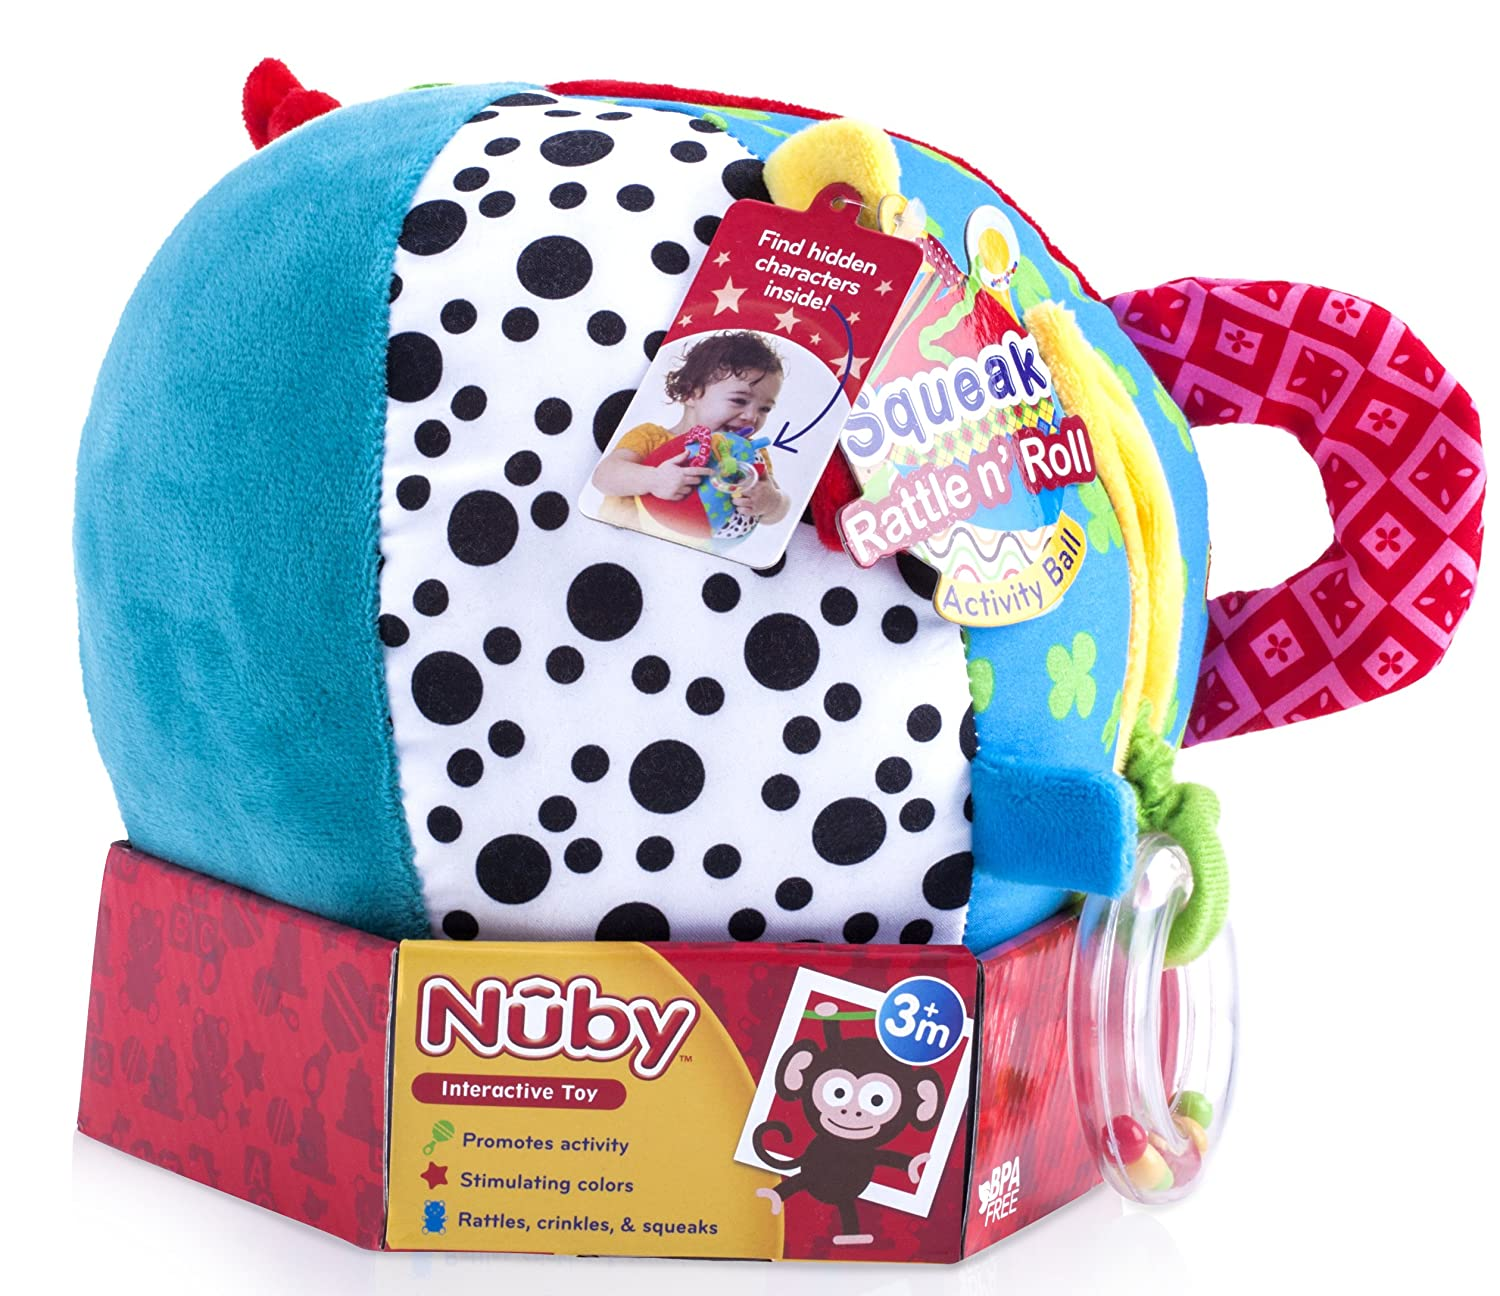 92942 Nuby Squeak Rattle N Roll Plush Interactive Toy Unique Look Inc